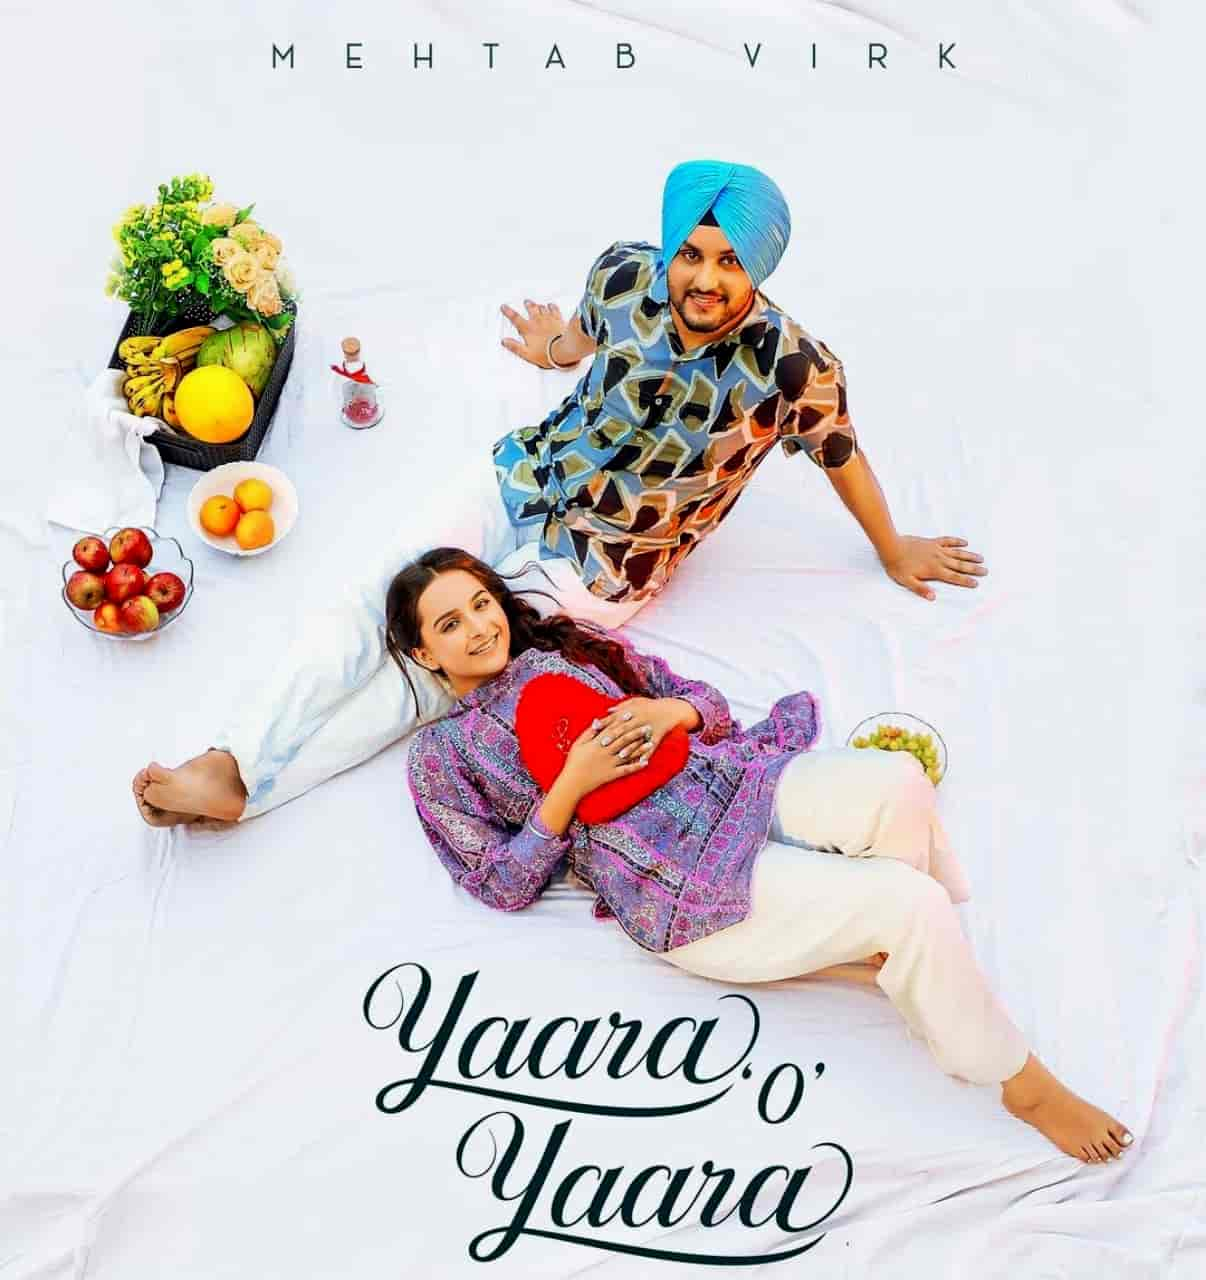 Yaara O Yaara Punjabi Song Image Features Mehtab Virk and Sruishty Mann